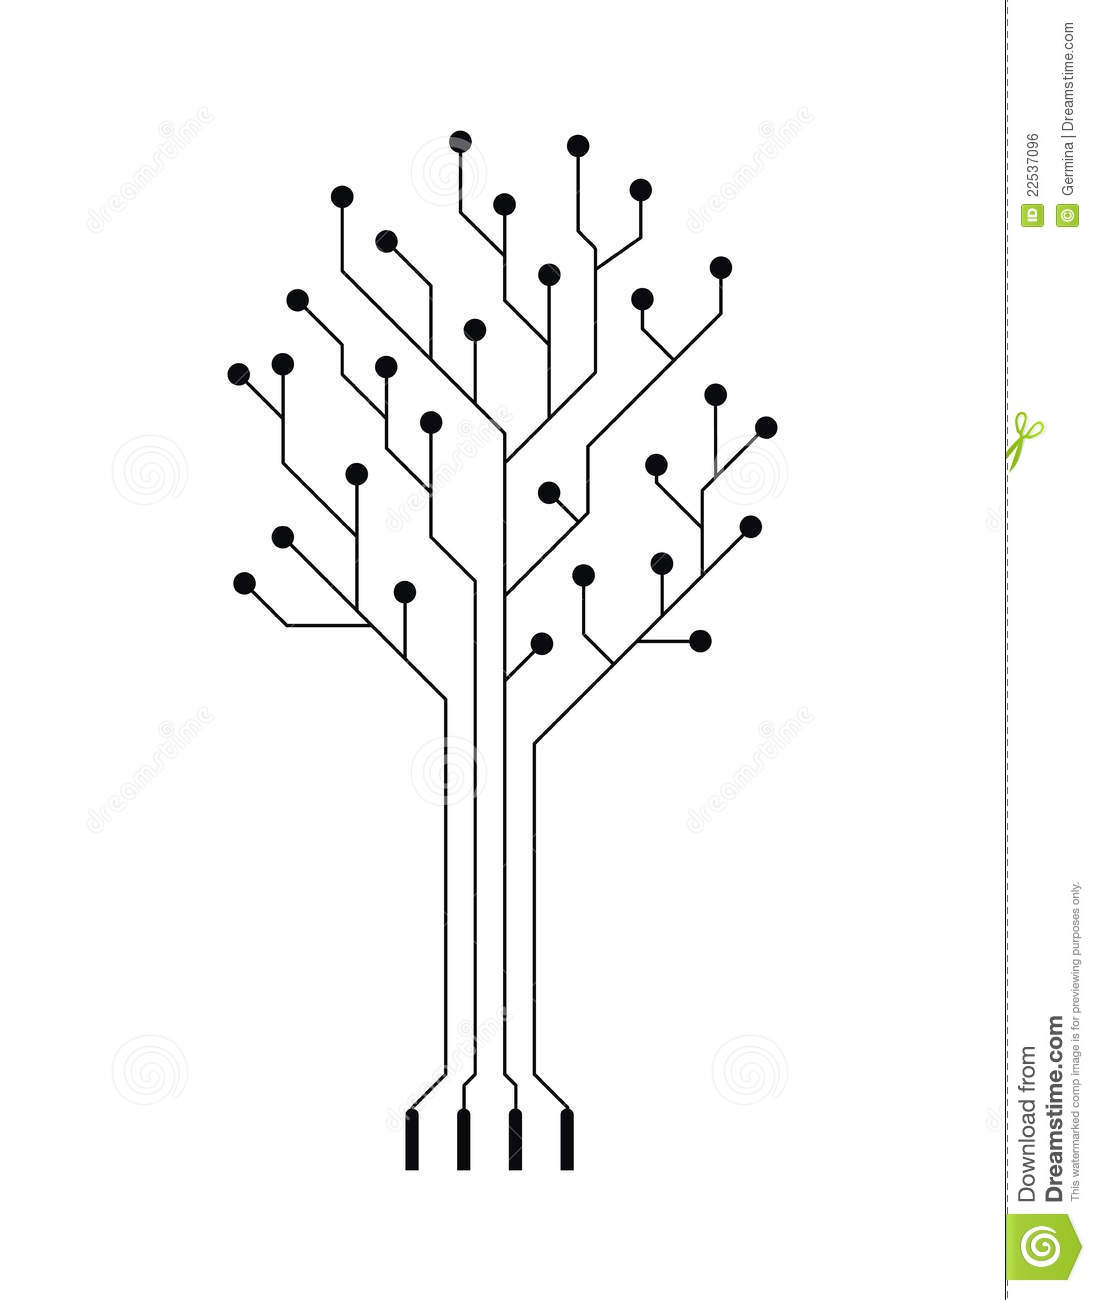 Vector Simple Electronic Tree Stock Illustration Of Circuit Board Free Photo Hd Public Domain Pictures Creative Conceptual Isolated